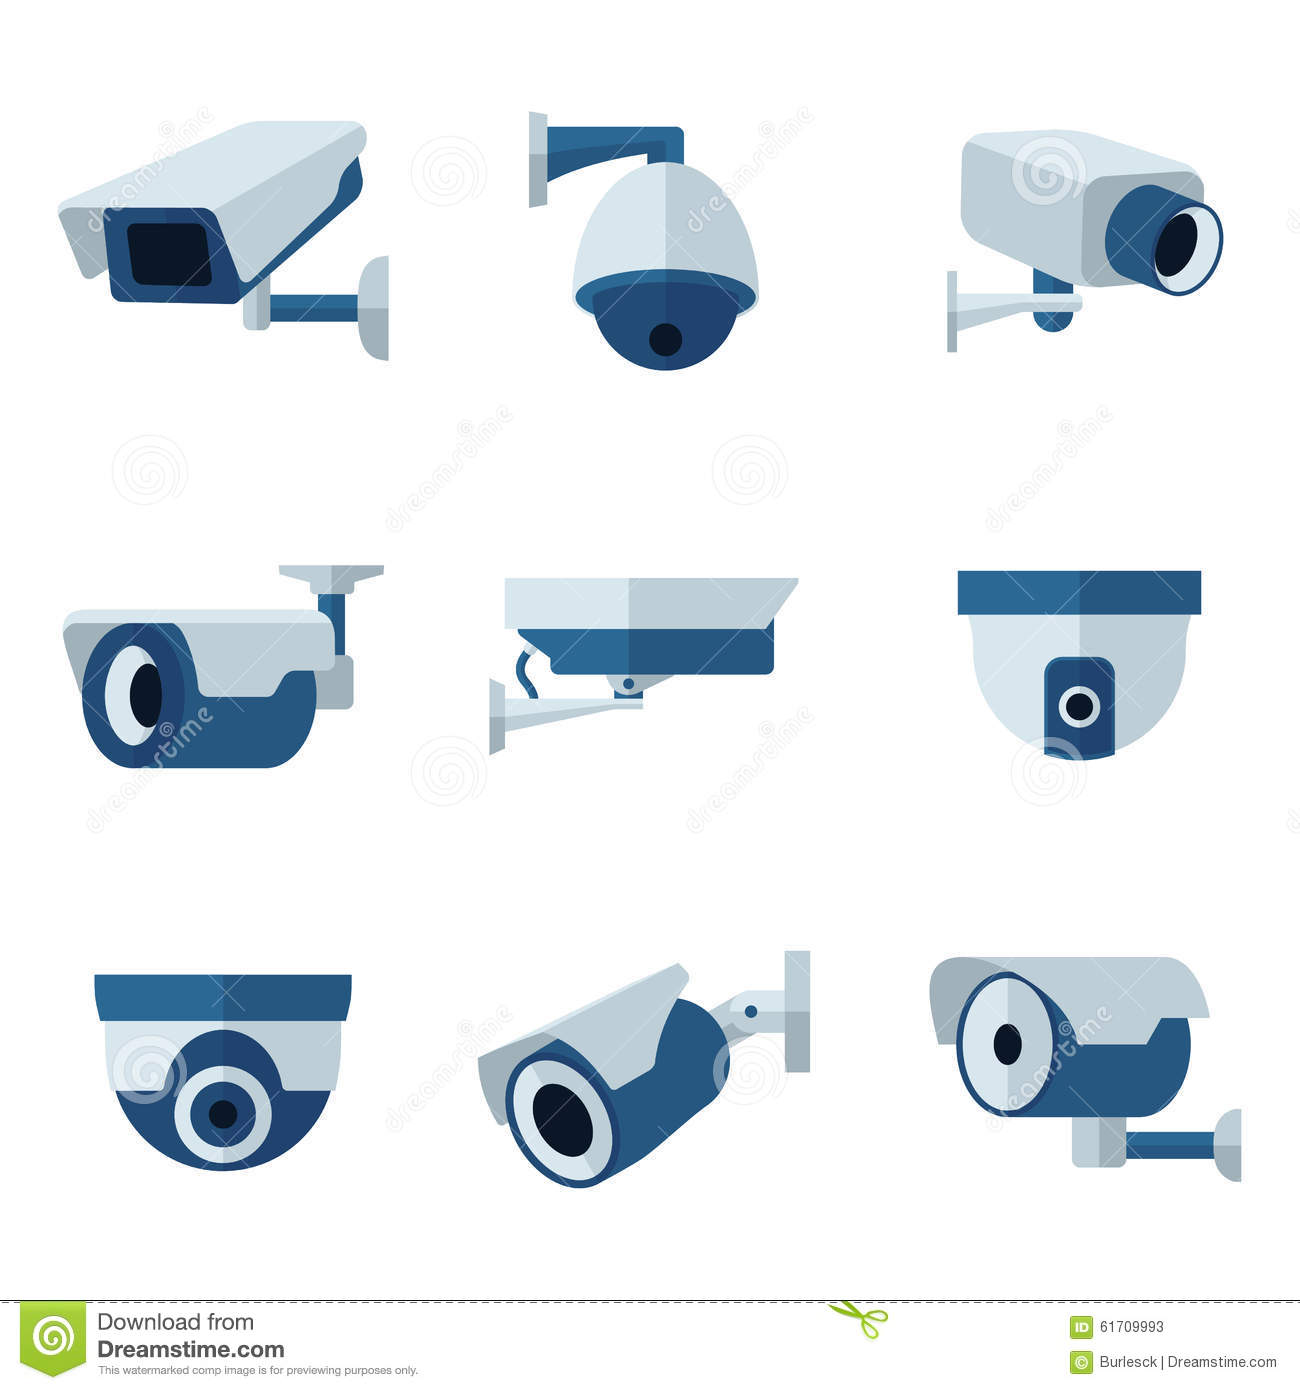 Security camera, CCTV flat icons set. Surveillance private protection ...